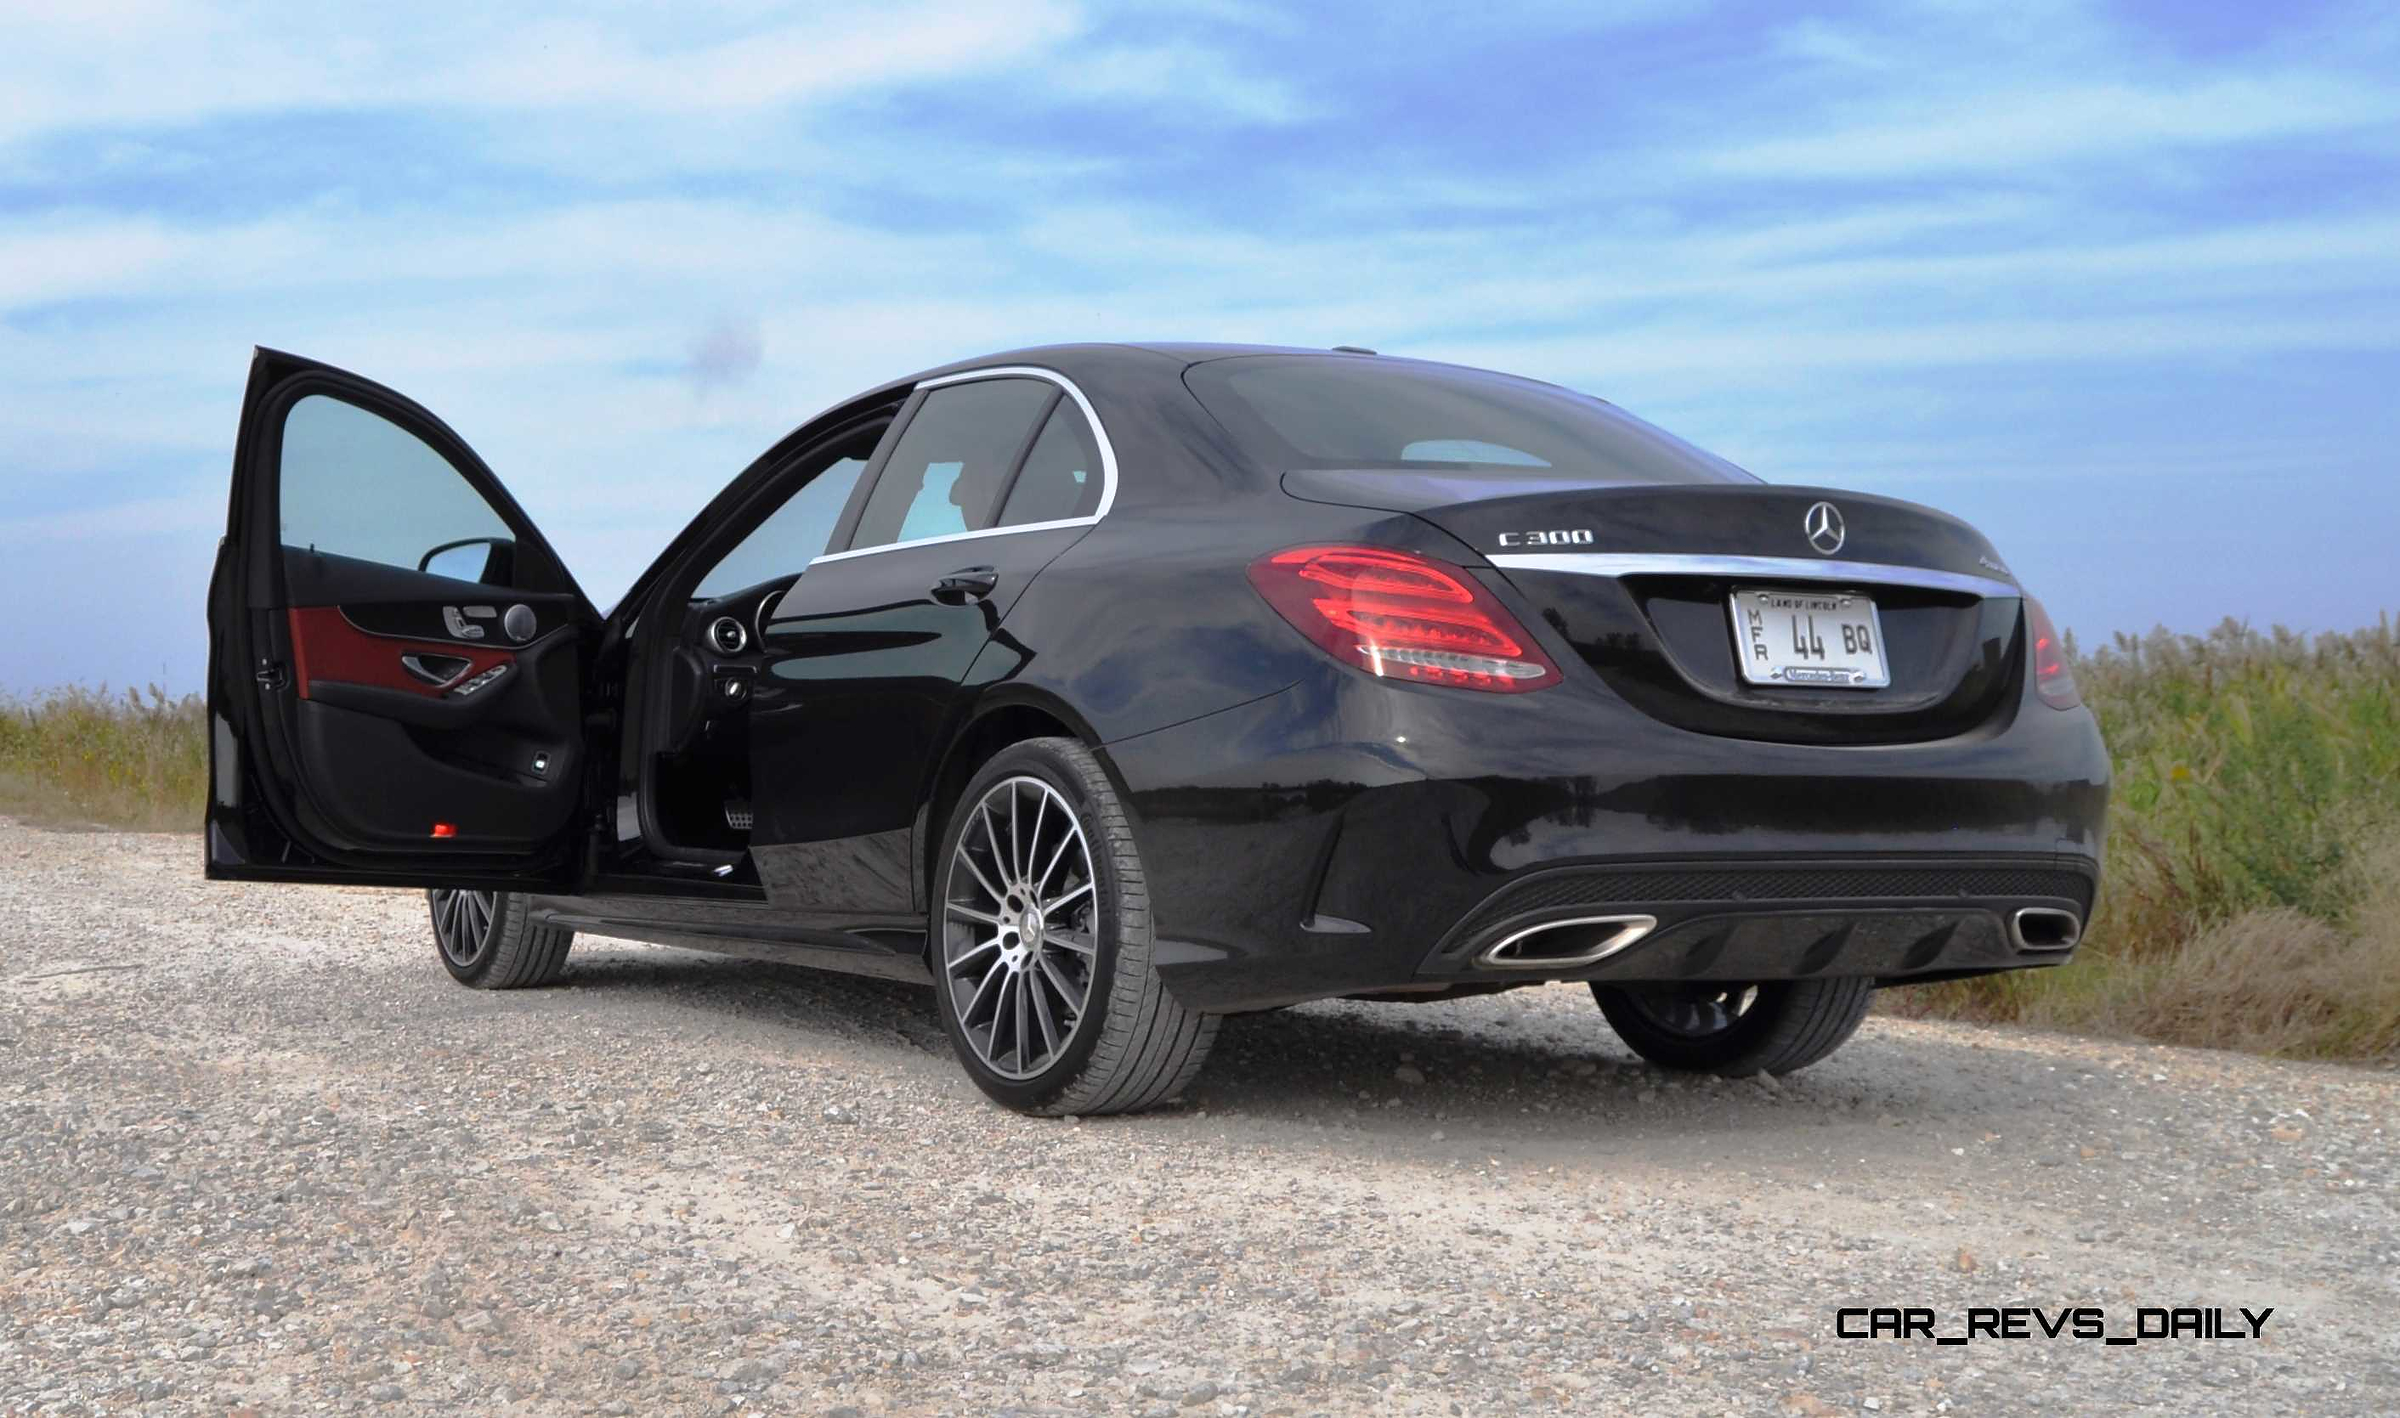 2015 mercedes benz c300 4matic sport review for 2015 mercedes benz